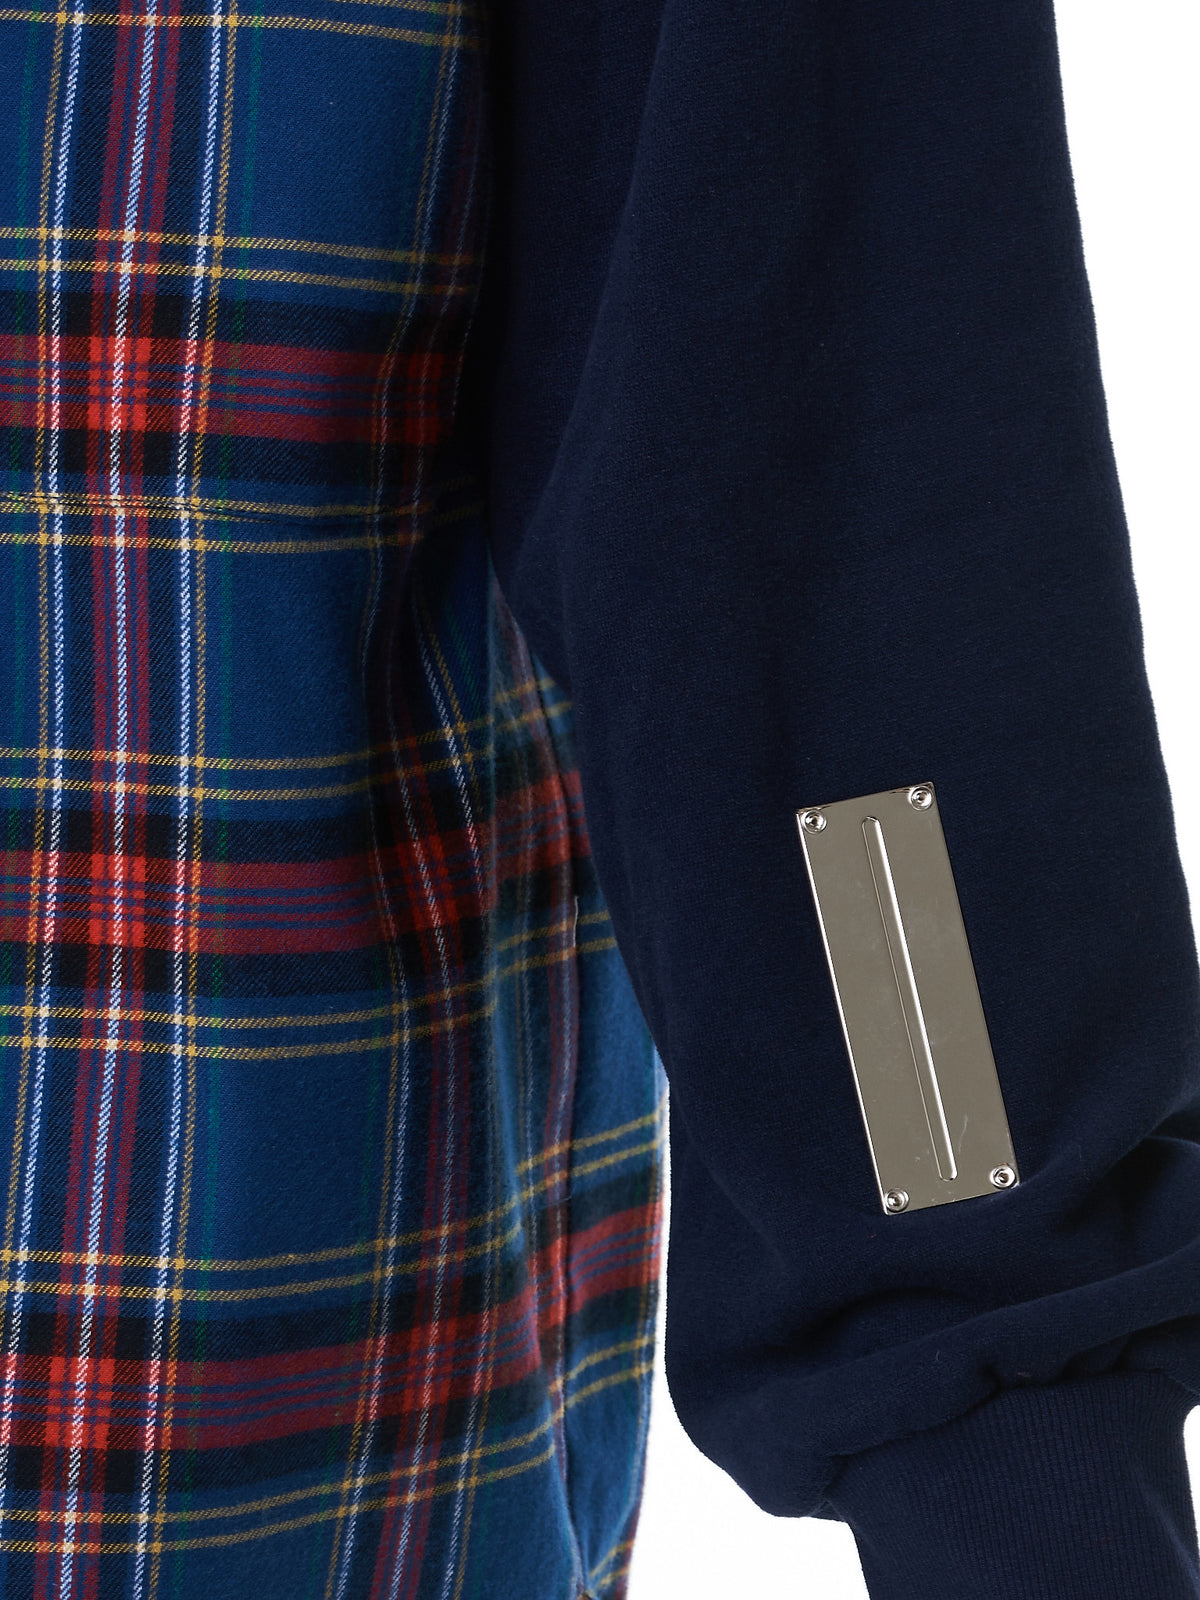 Plaid Hooded Sweater (NN10-ST08-B-BLK-BLUE-CHECK)